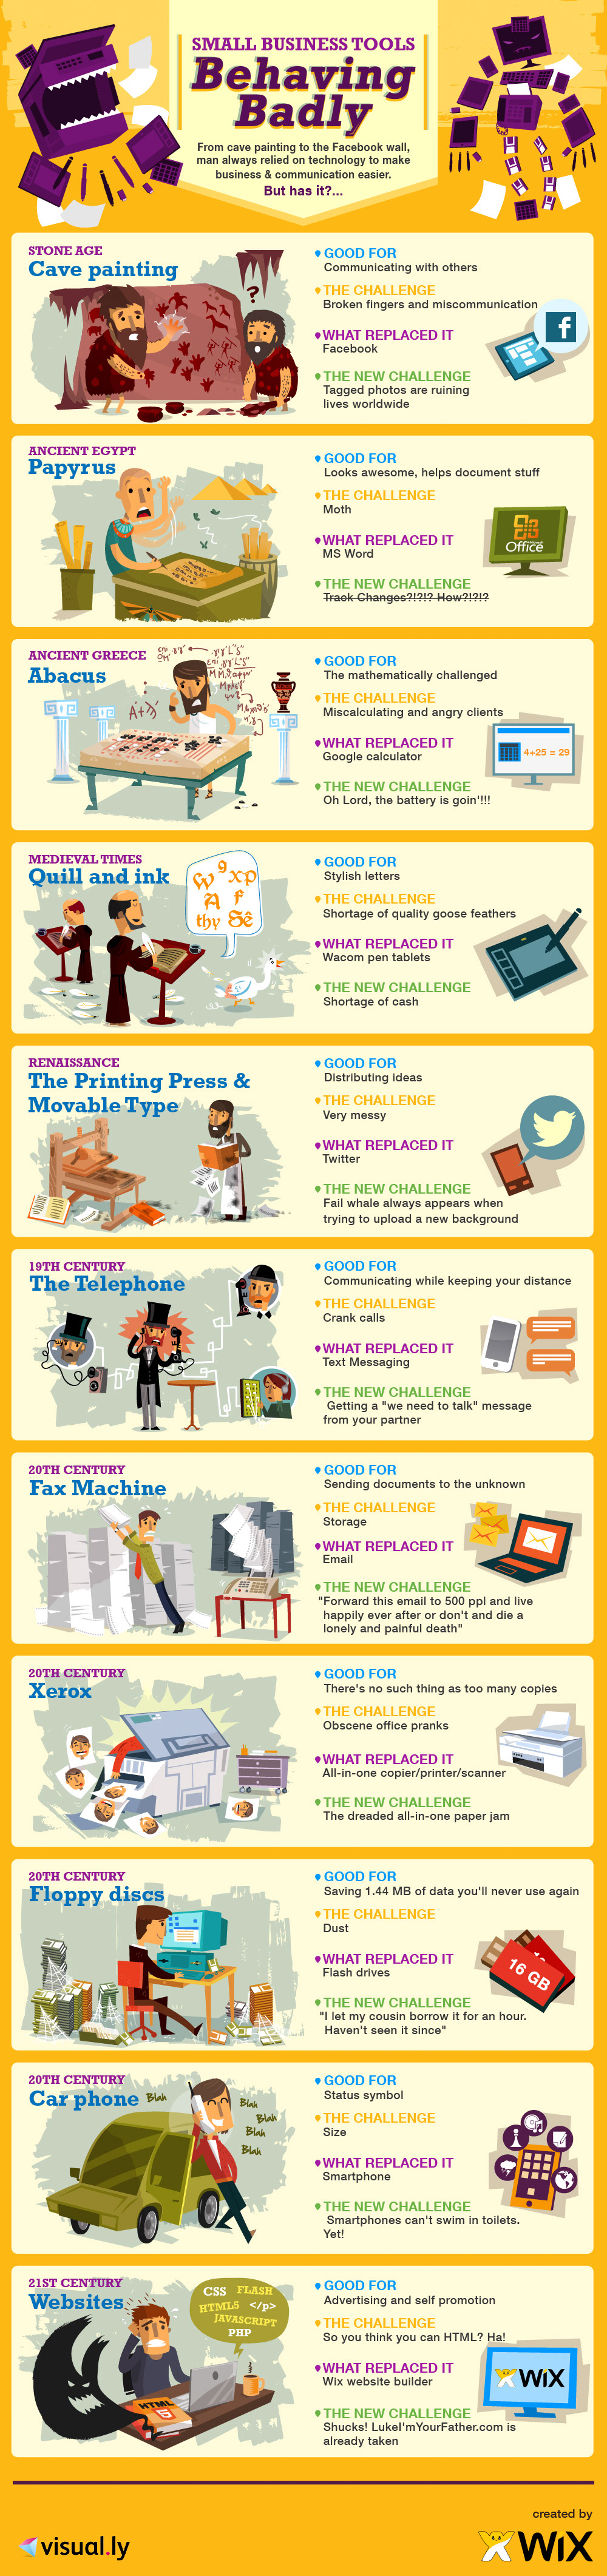 Business Tools Past and Present-Infographic